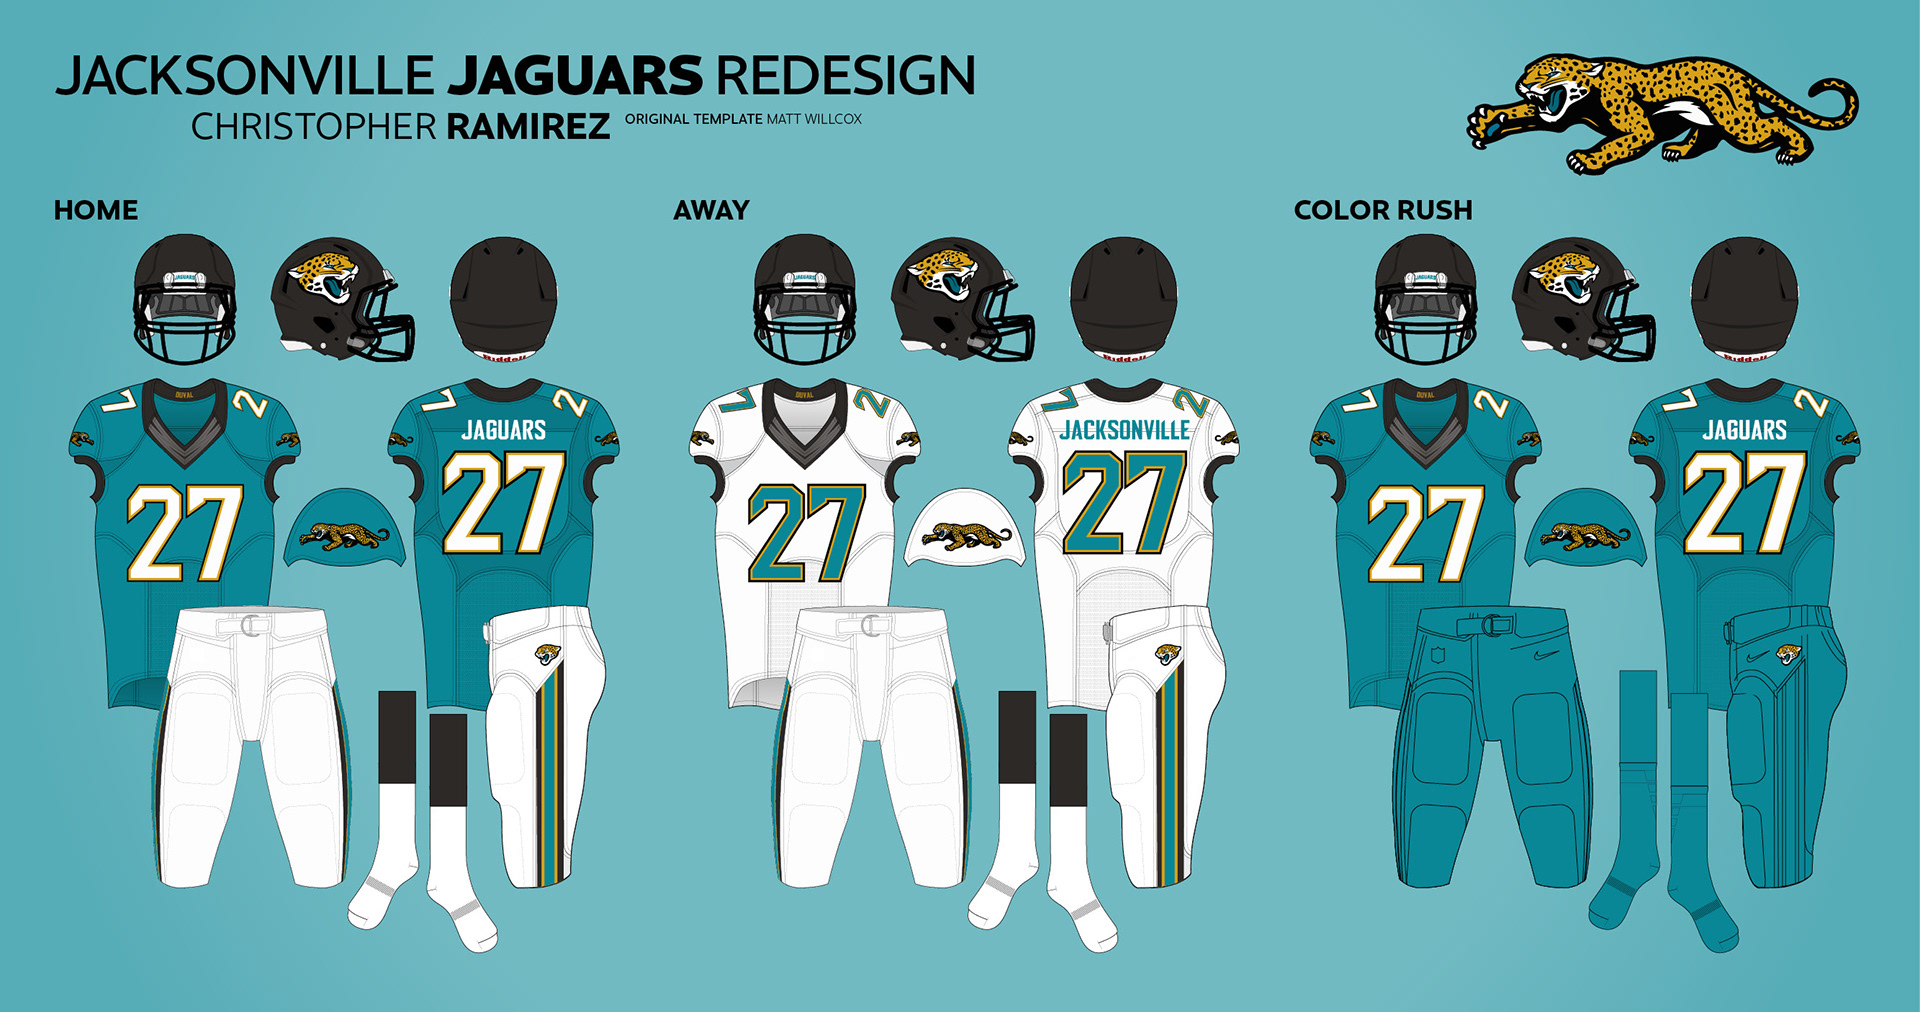 283e536cddb Jacksonville Jaguars Redesign on Behance